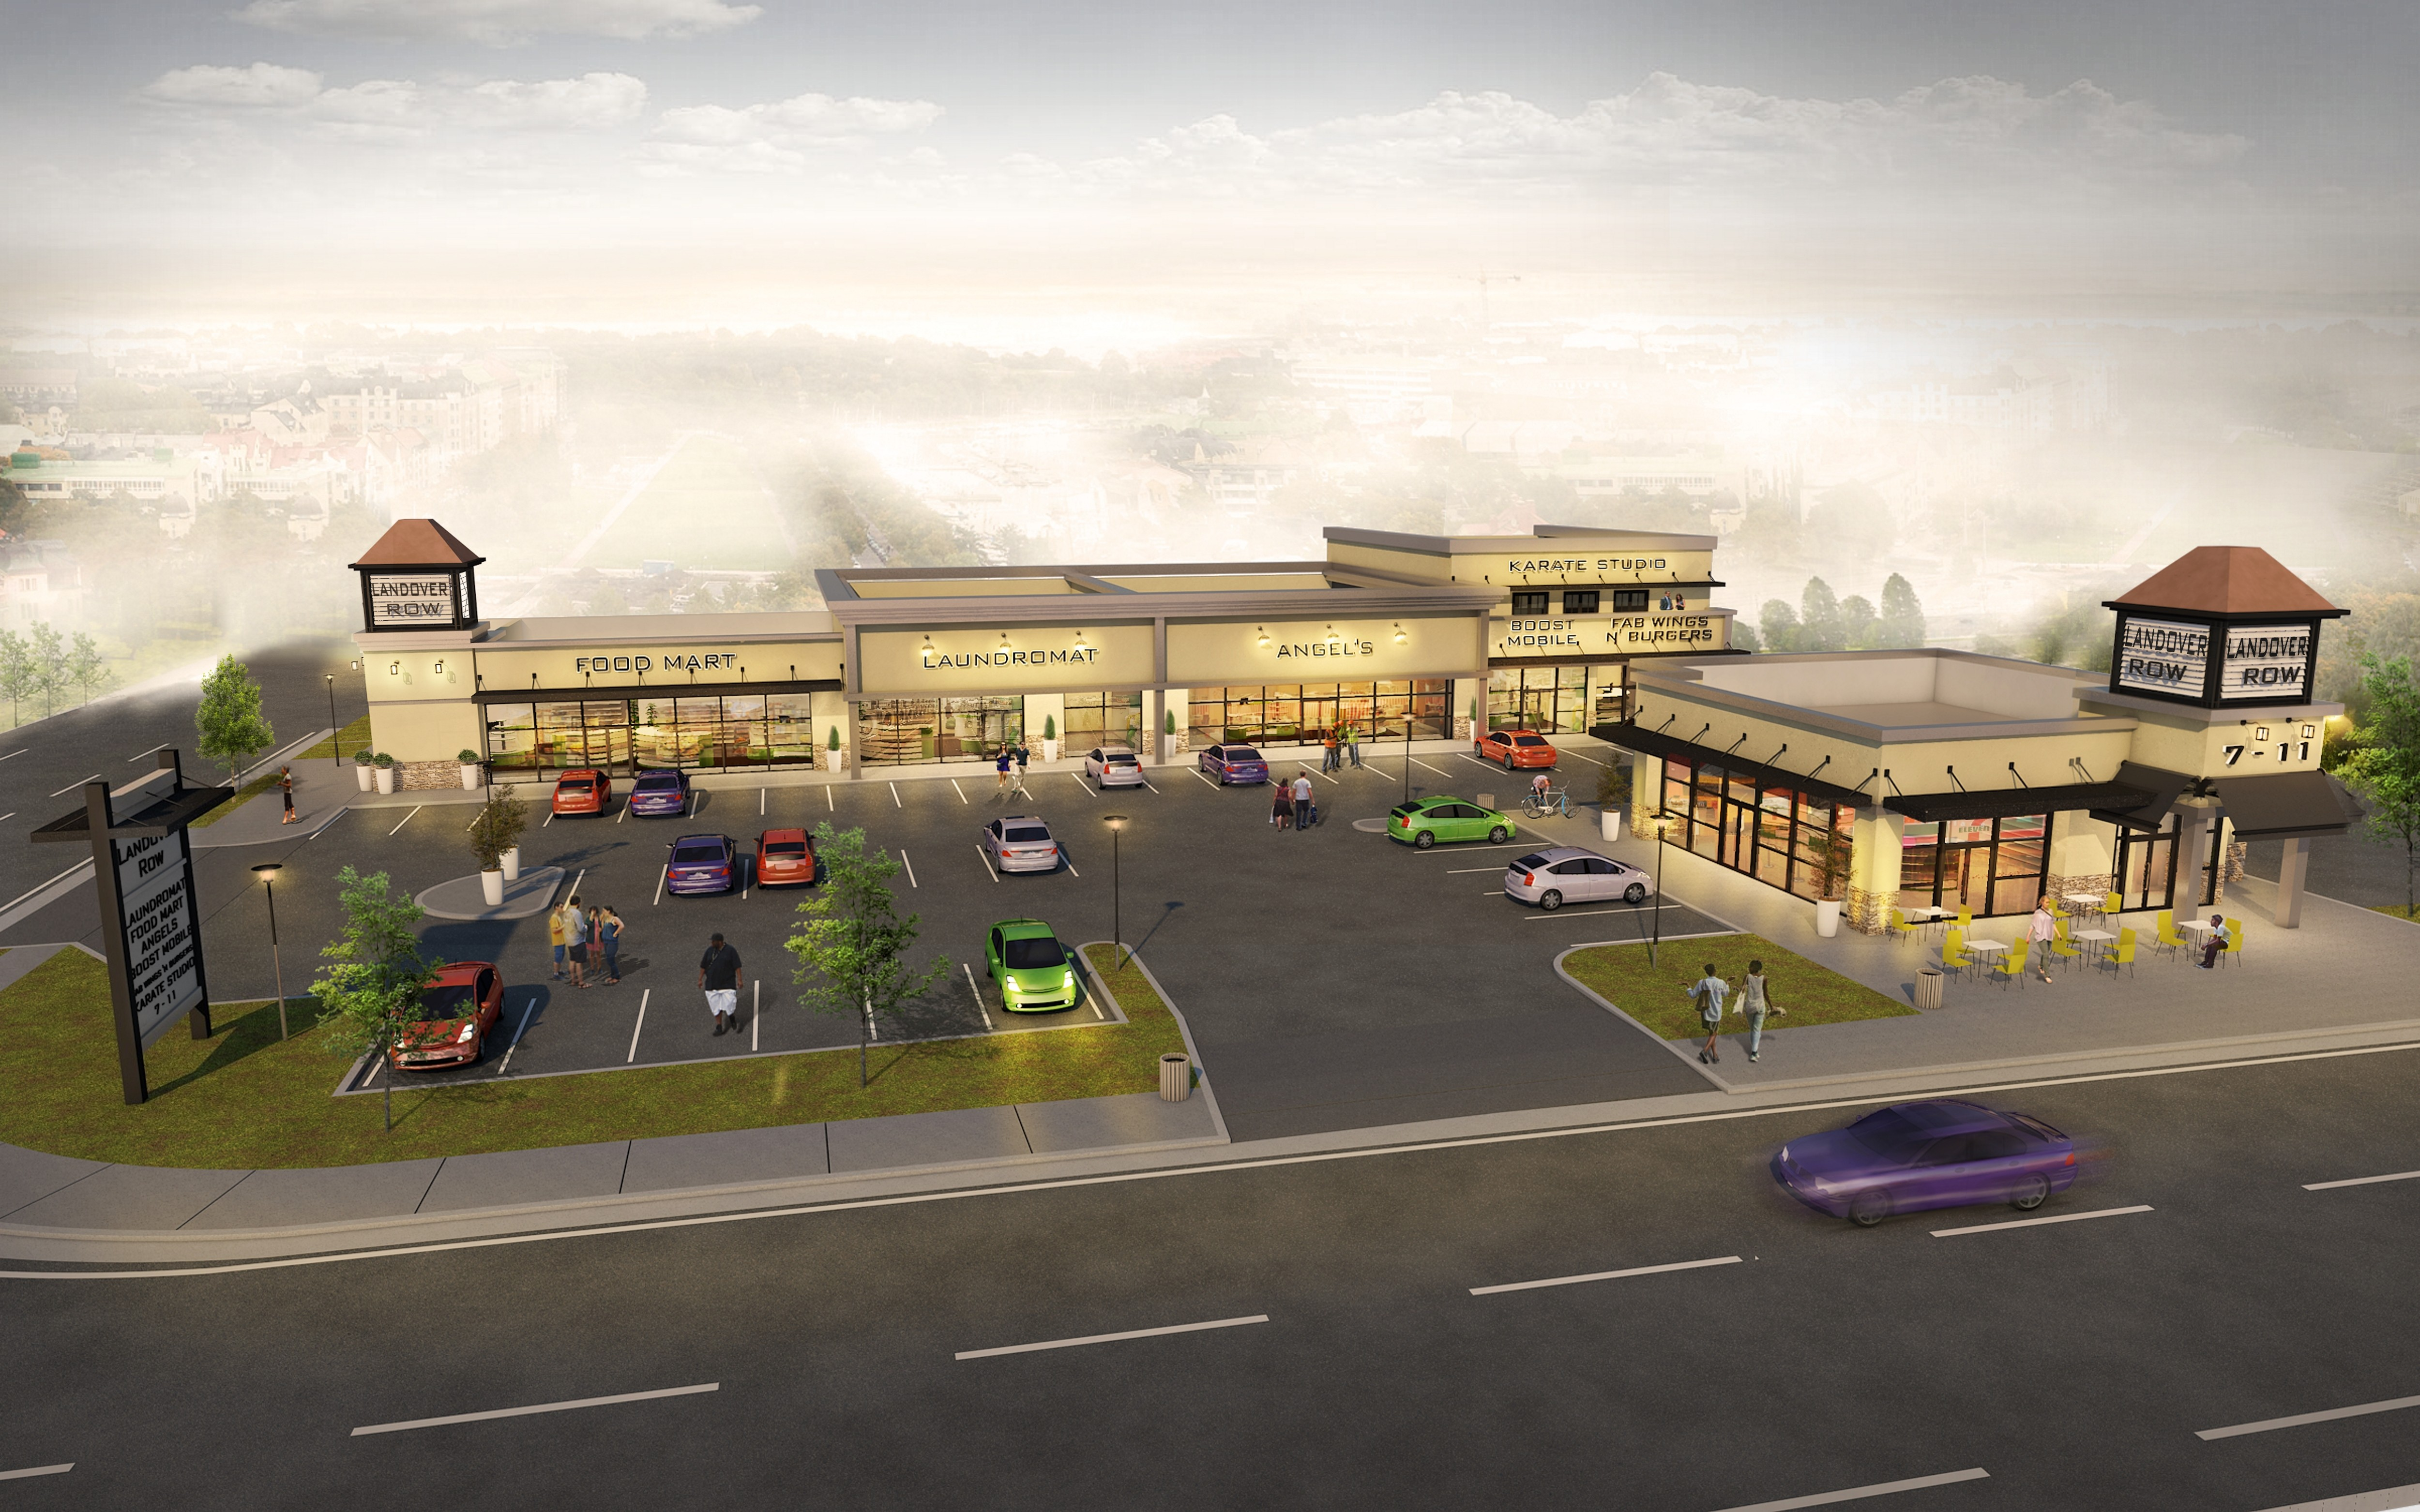 NEED MODIFICATION: Modern, Boutique Strip Mall Rendering